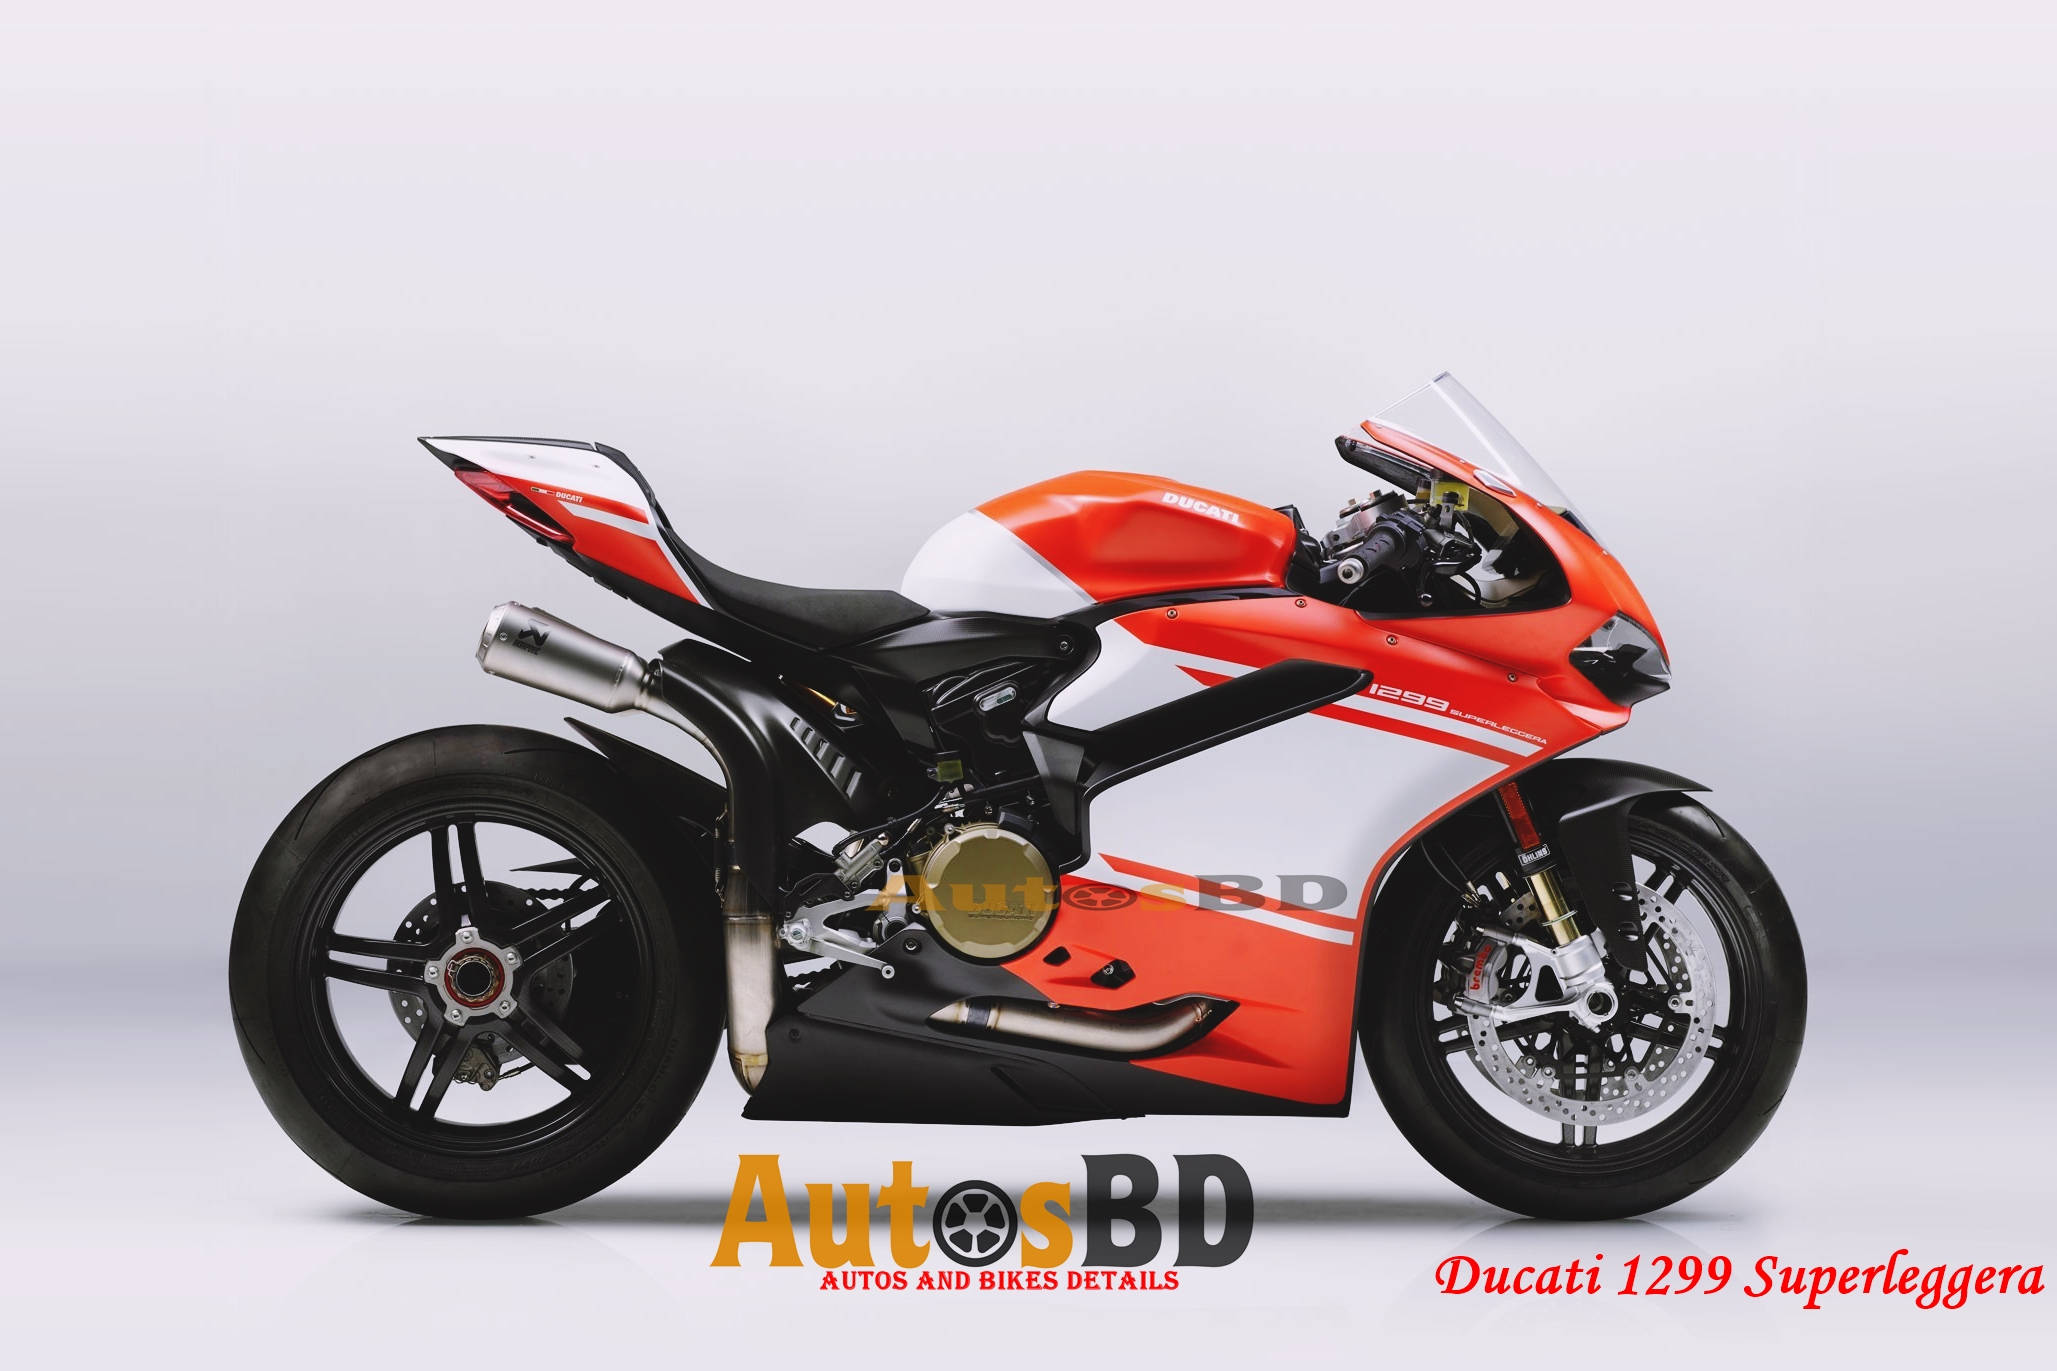 Ducati 1299 Superleggera Motorcycle Price in India